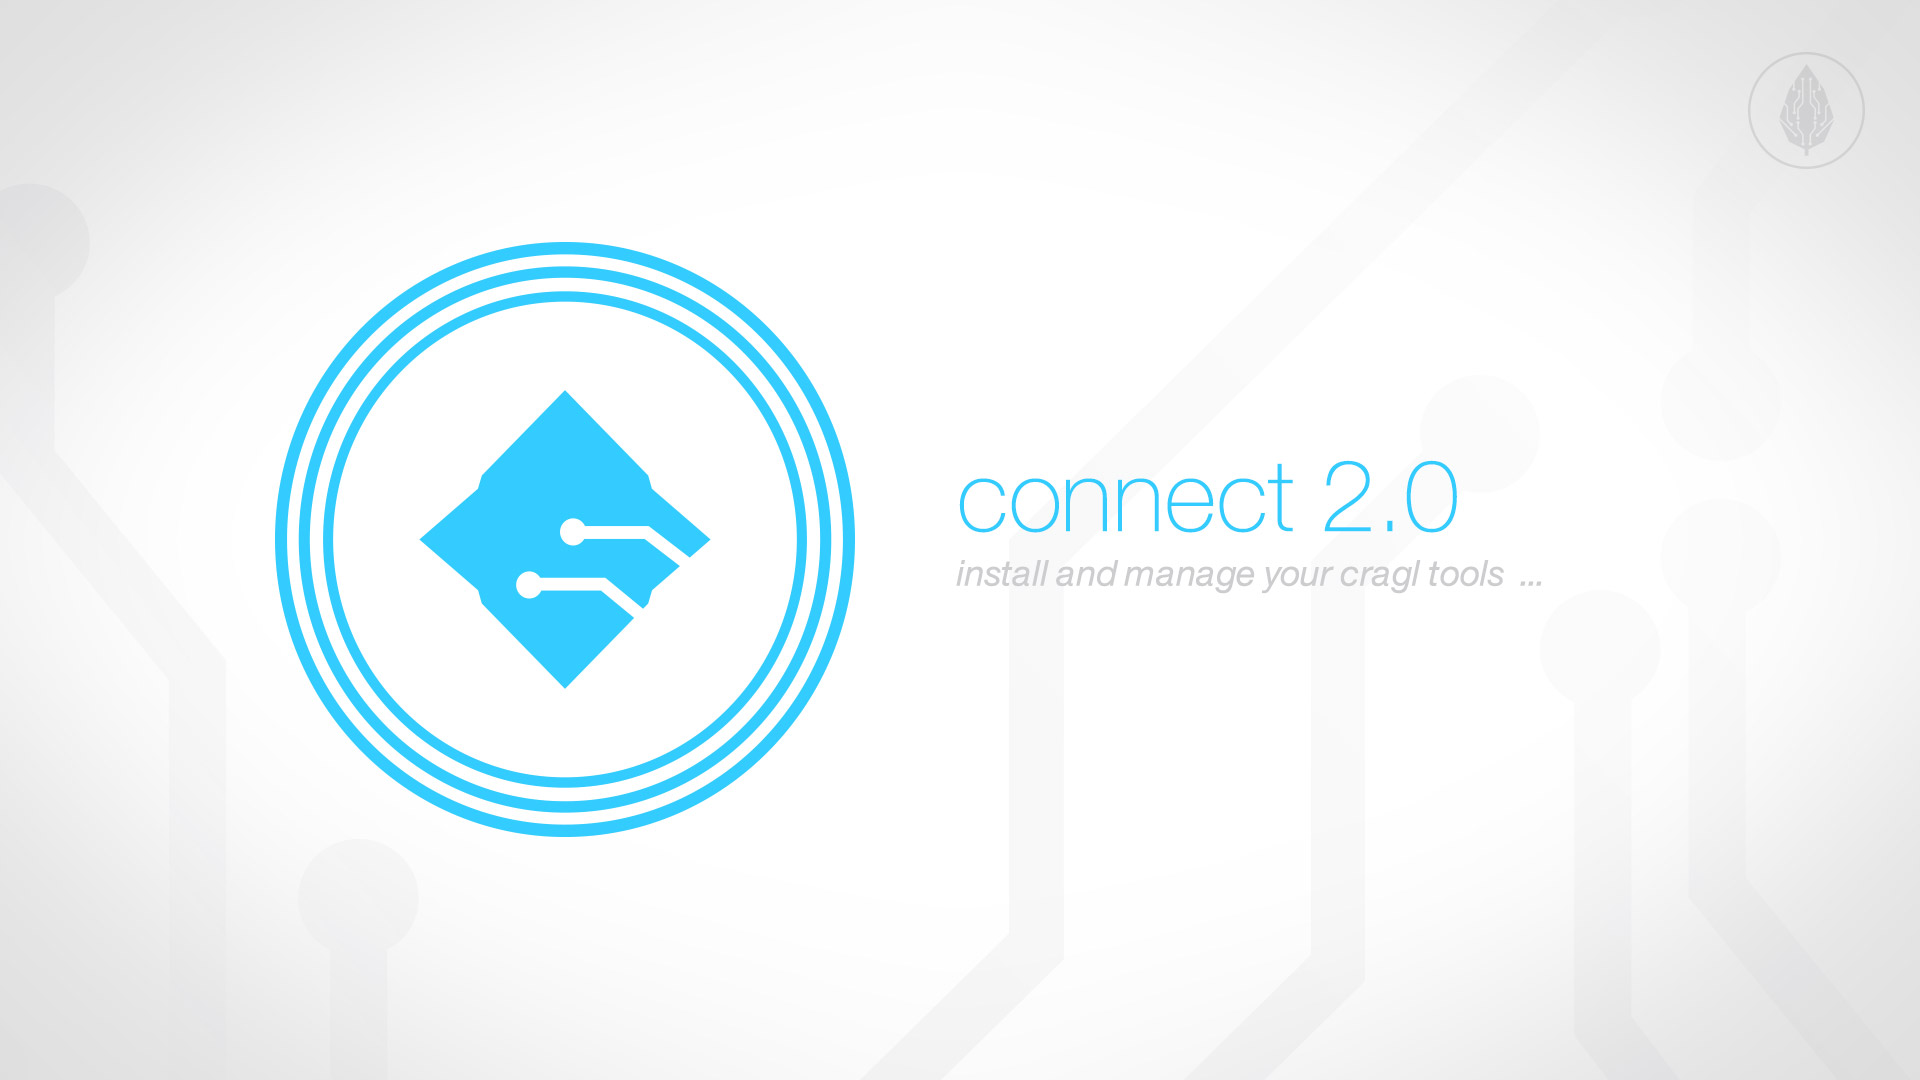 Published connect 2.0